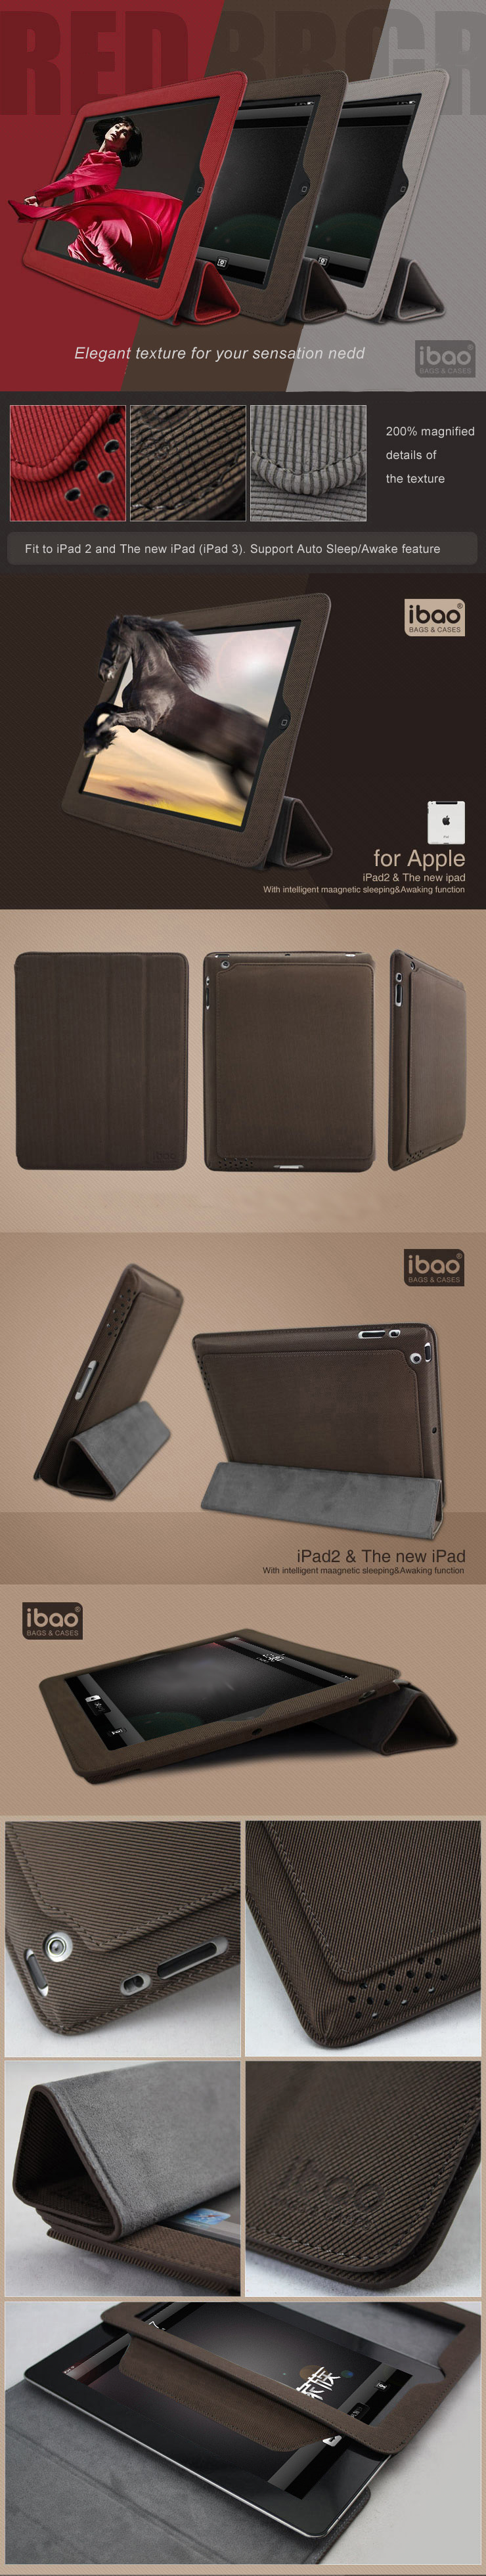 iBao iPad 2 / The new iPad (iPad 3)  Sleeve Bags, Covers - High-grade Cross Pattern Fiber with Soft Matte Processed Inner Layer